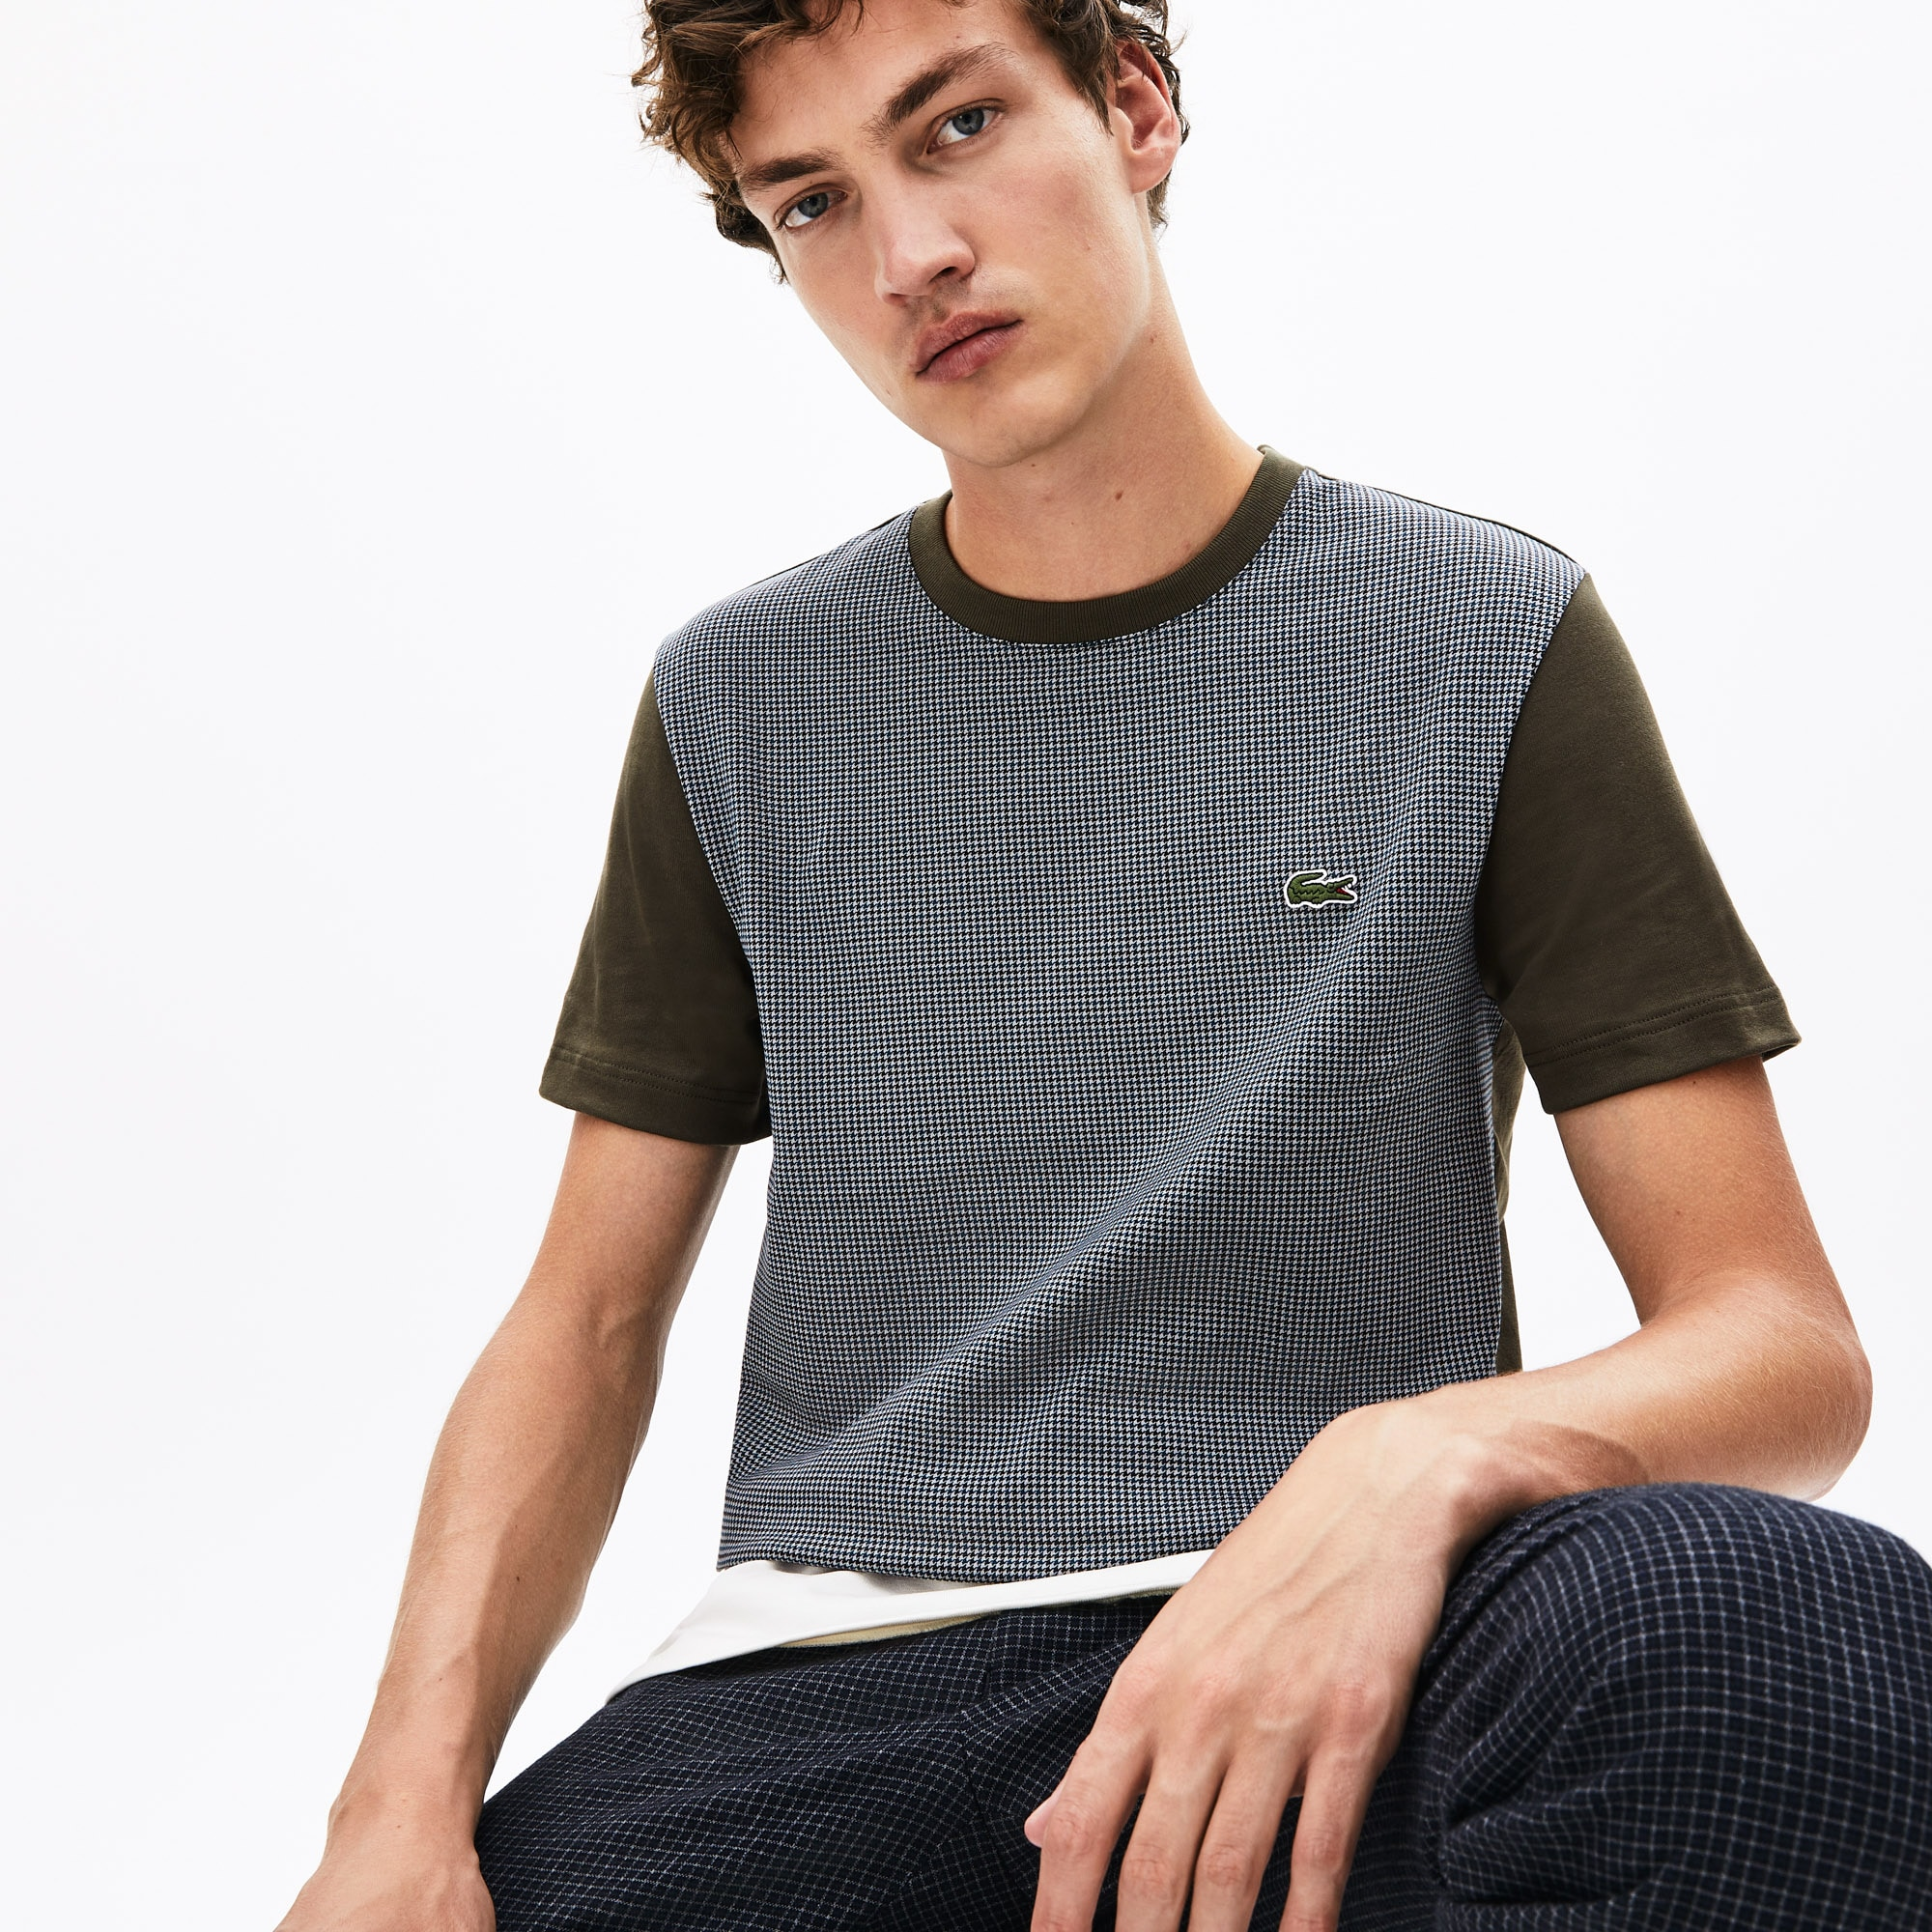 Lacoste Tops Men's Crewneck Print-Blocked Cotton T-Shirt